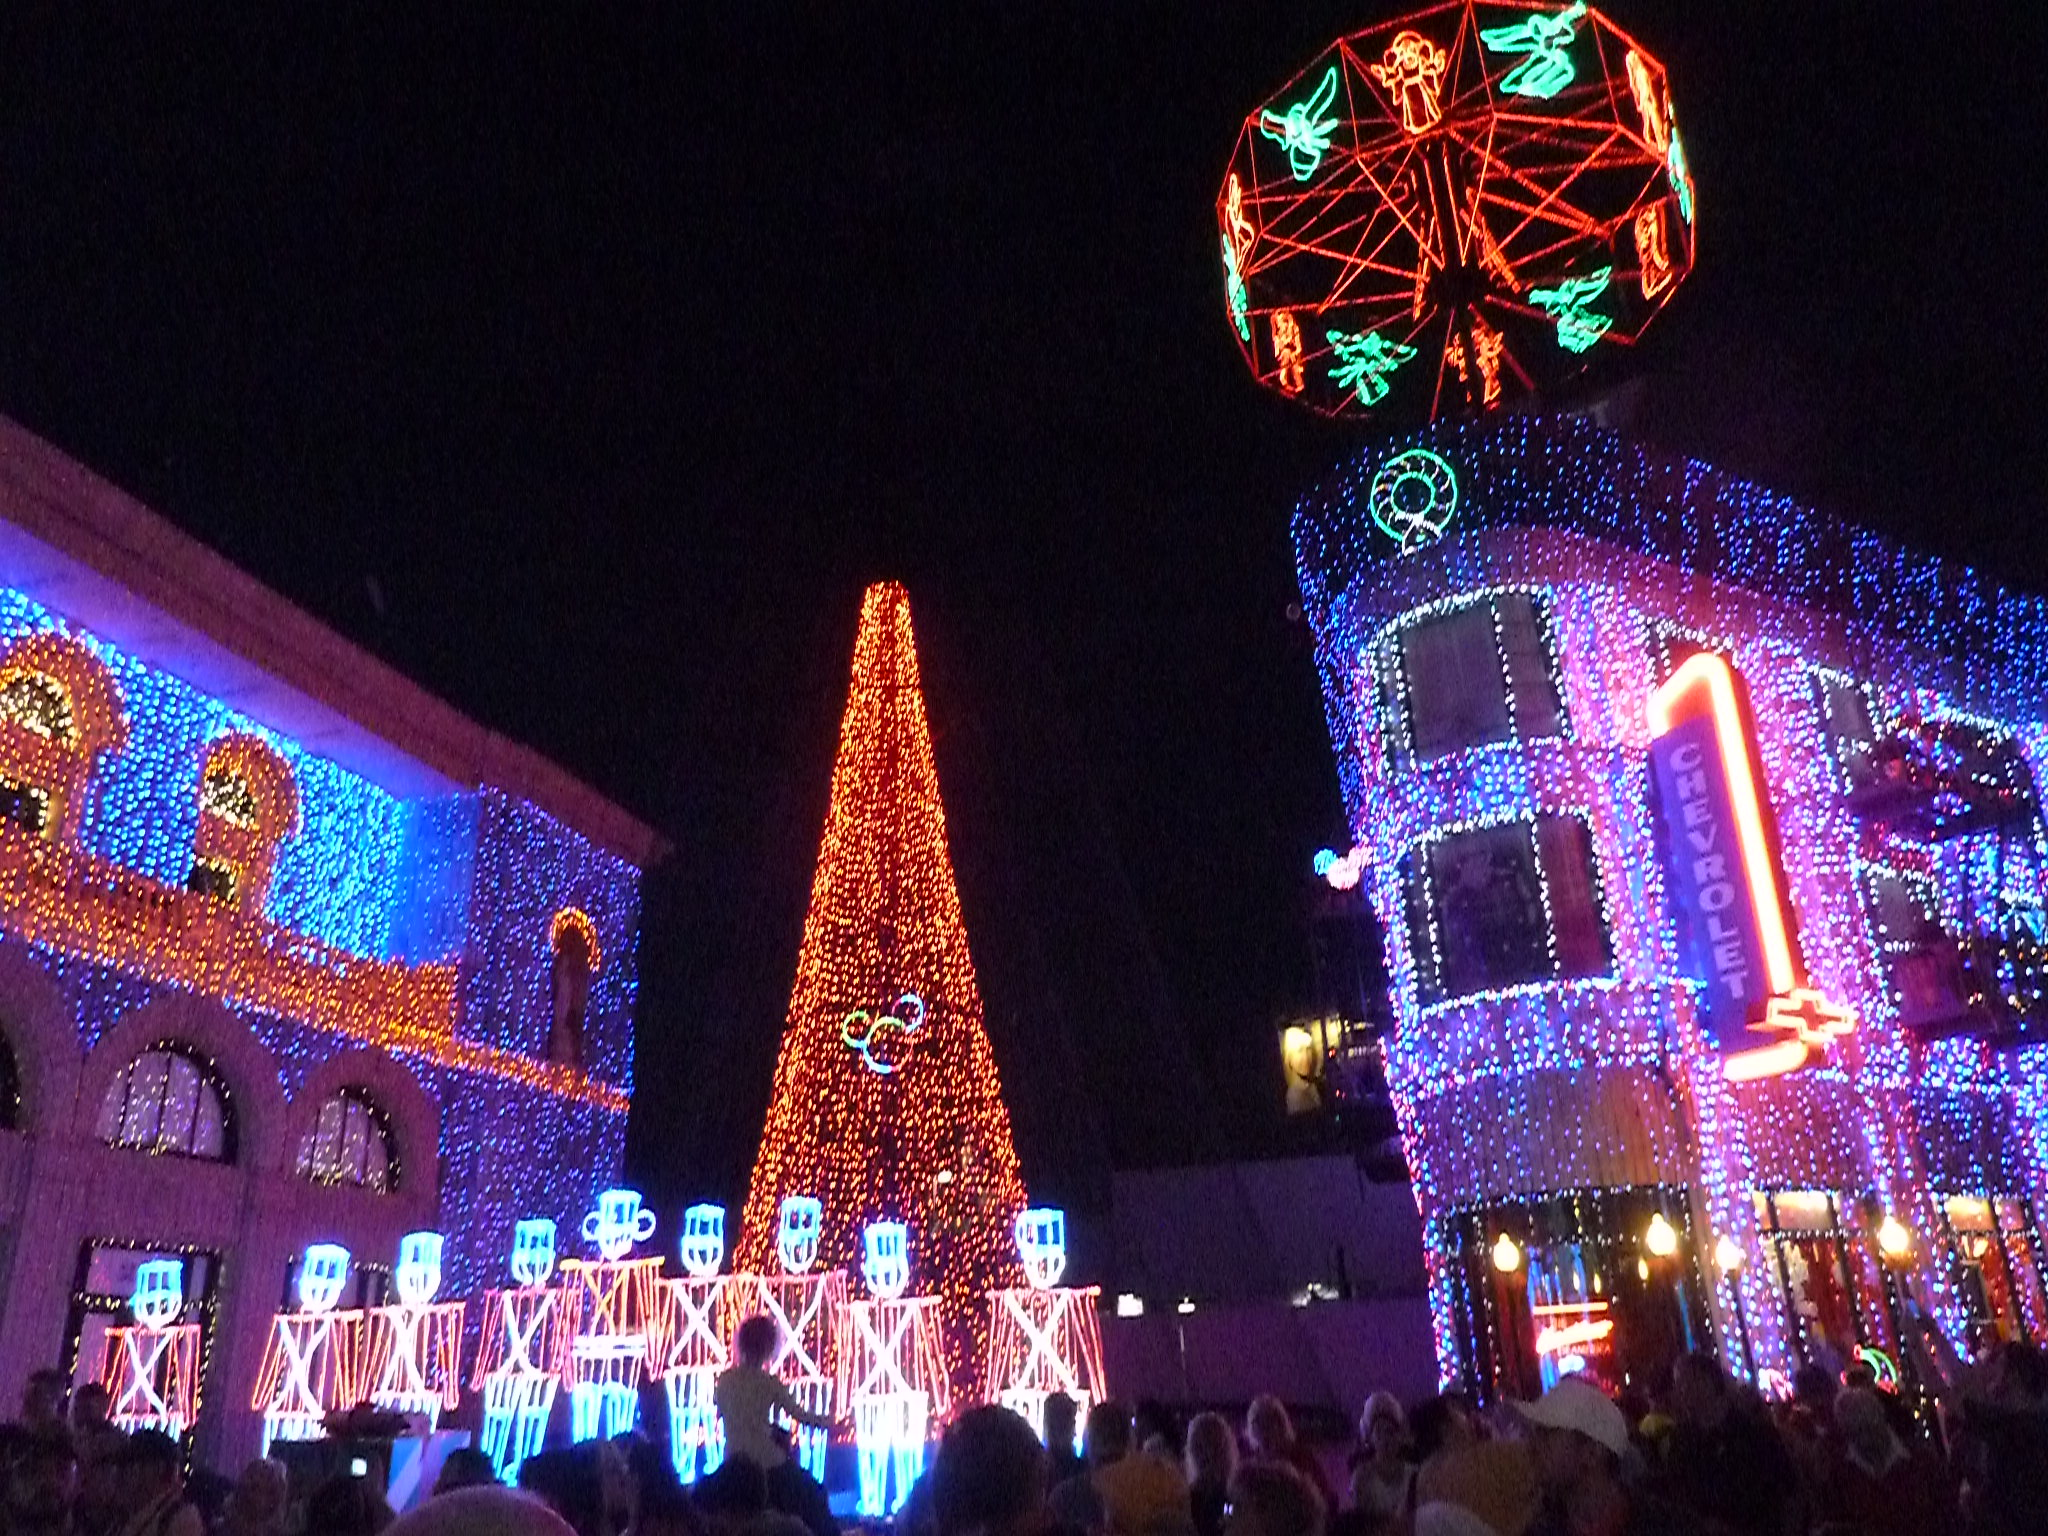 Video: 2015 Osborne Family Spectacle of Dancing Lights at Disney's Hollywood Studios